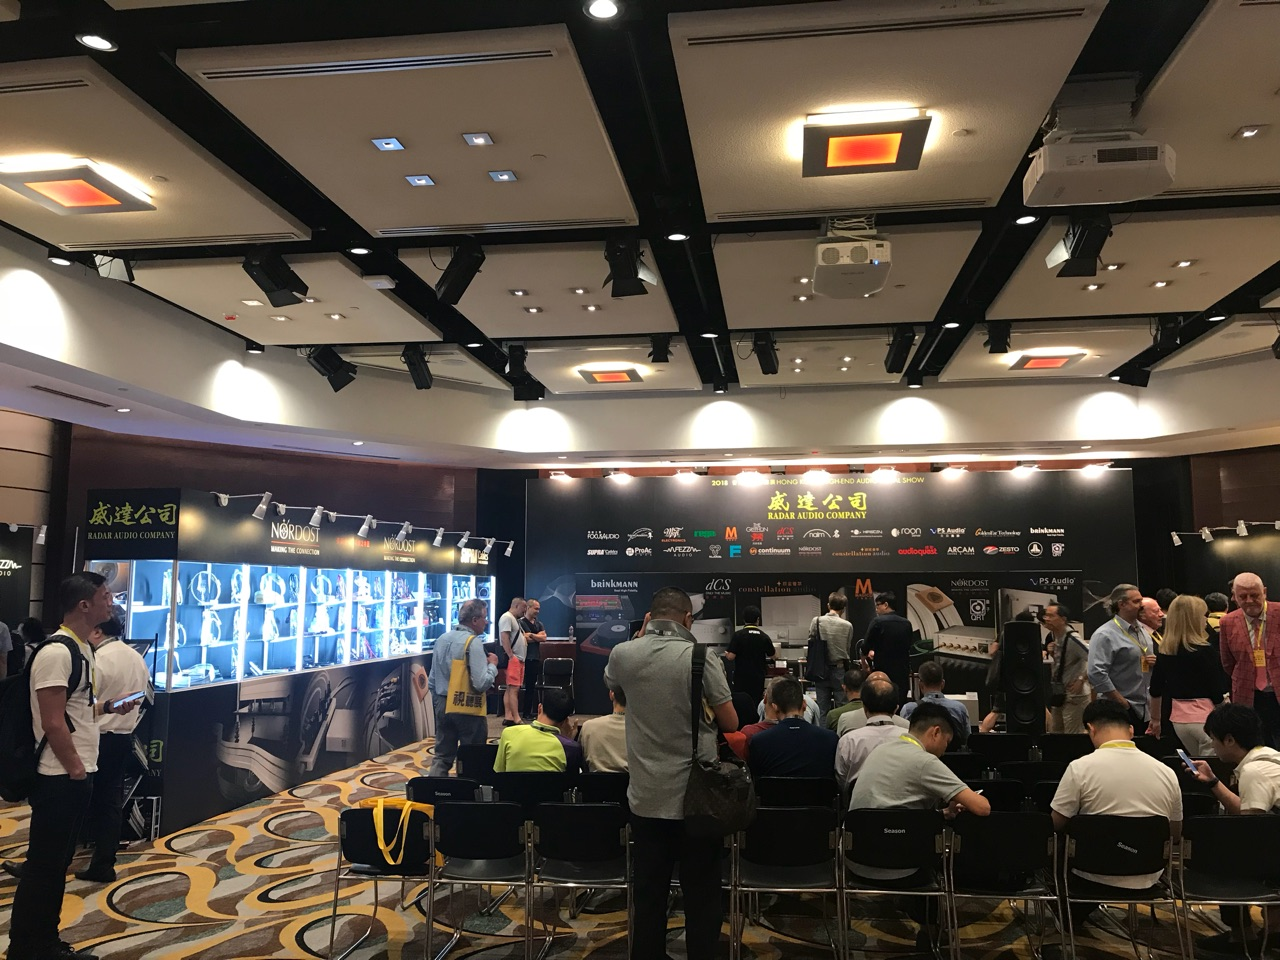 Hong Kong High-End Audio Visual Show 2018